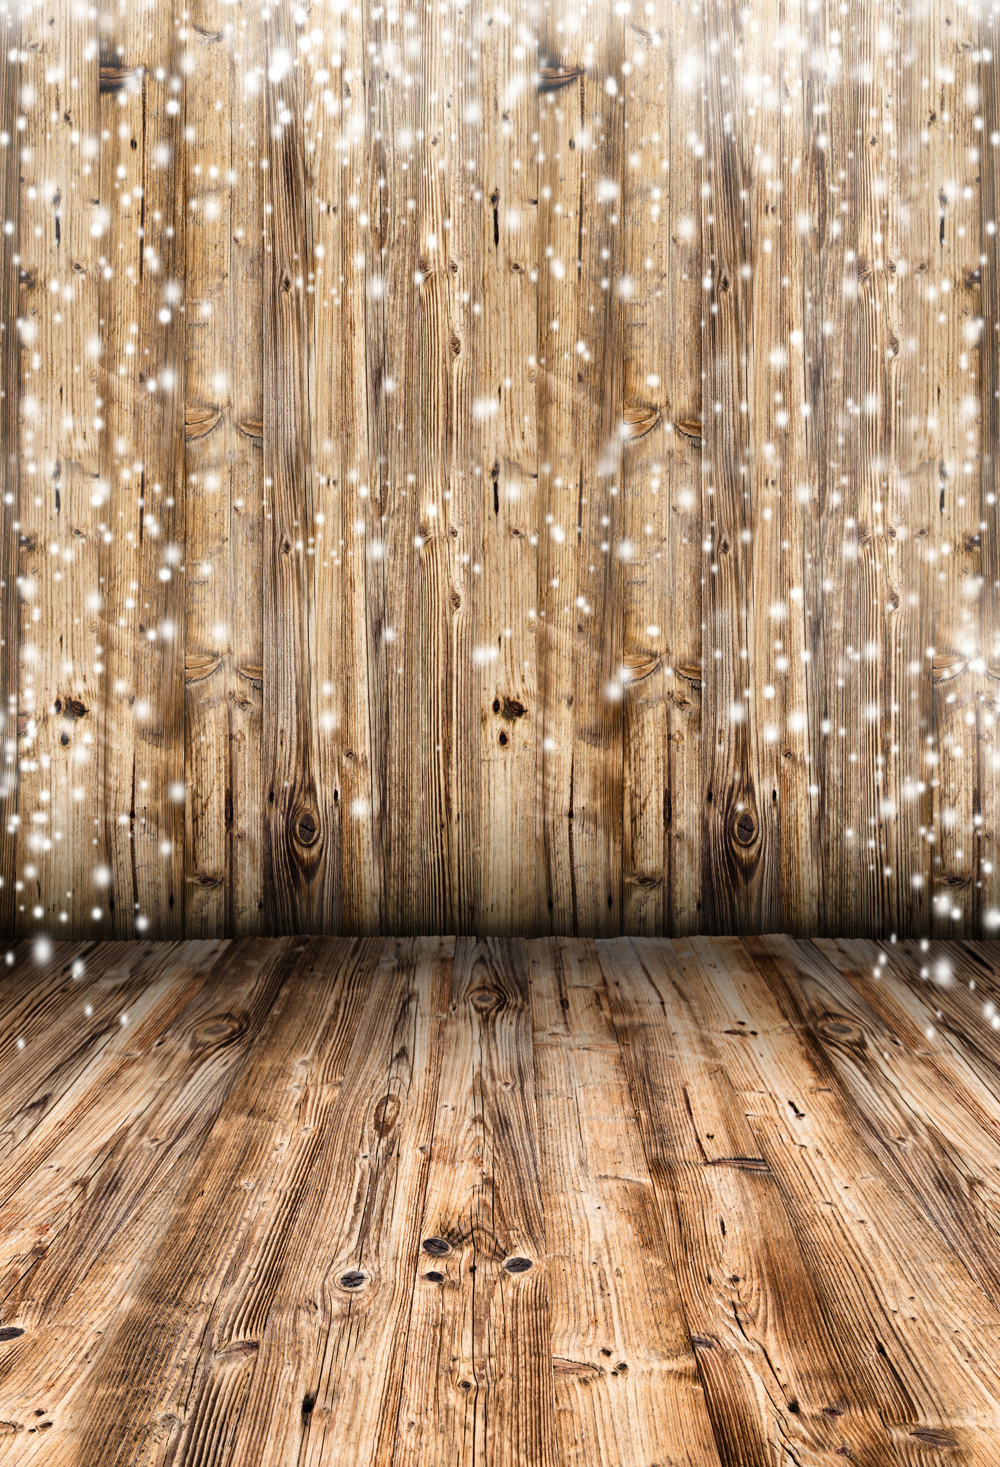 HUAYI 10x20ft wood floor backdrop wood vinyl wedding photography backdrops photo props background wood XT-6393 mehofoto christmas tree backdrop fireplace photo background white brick wall photography backdrops for wood floor props 914